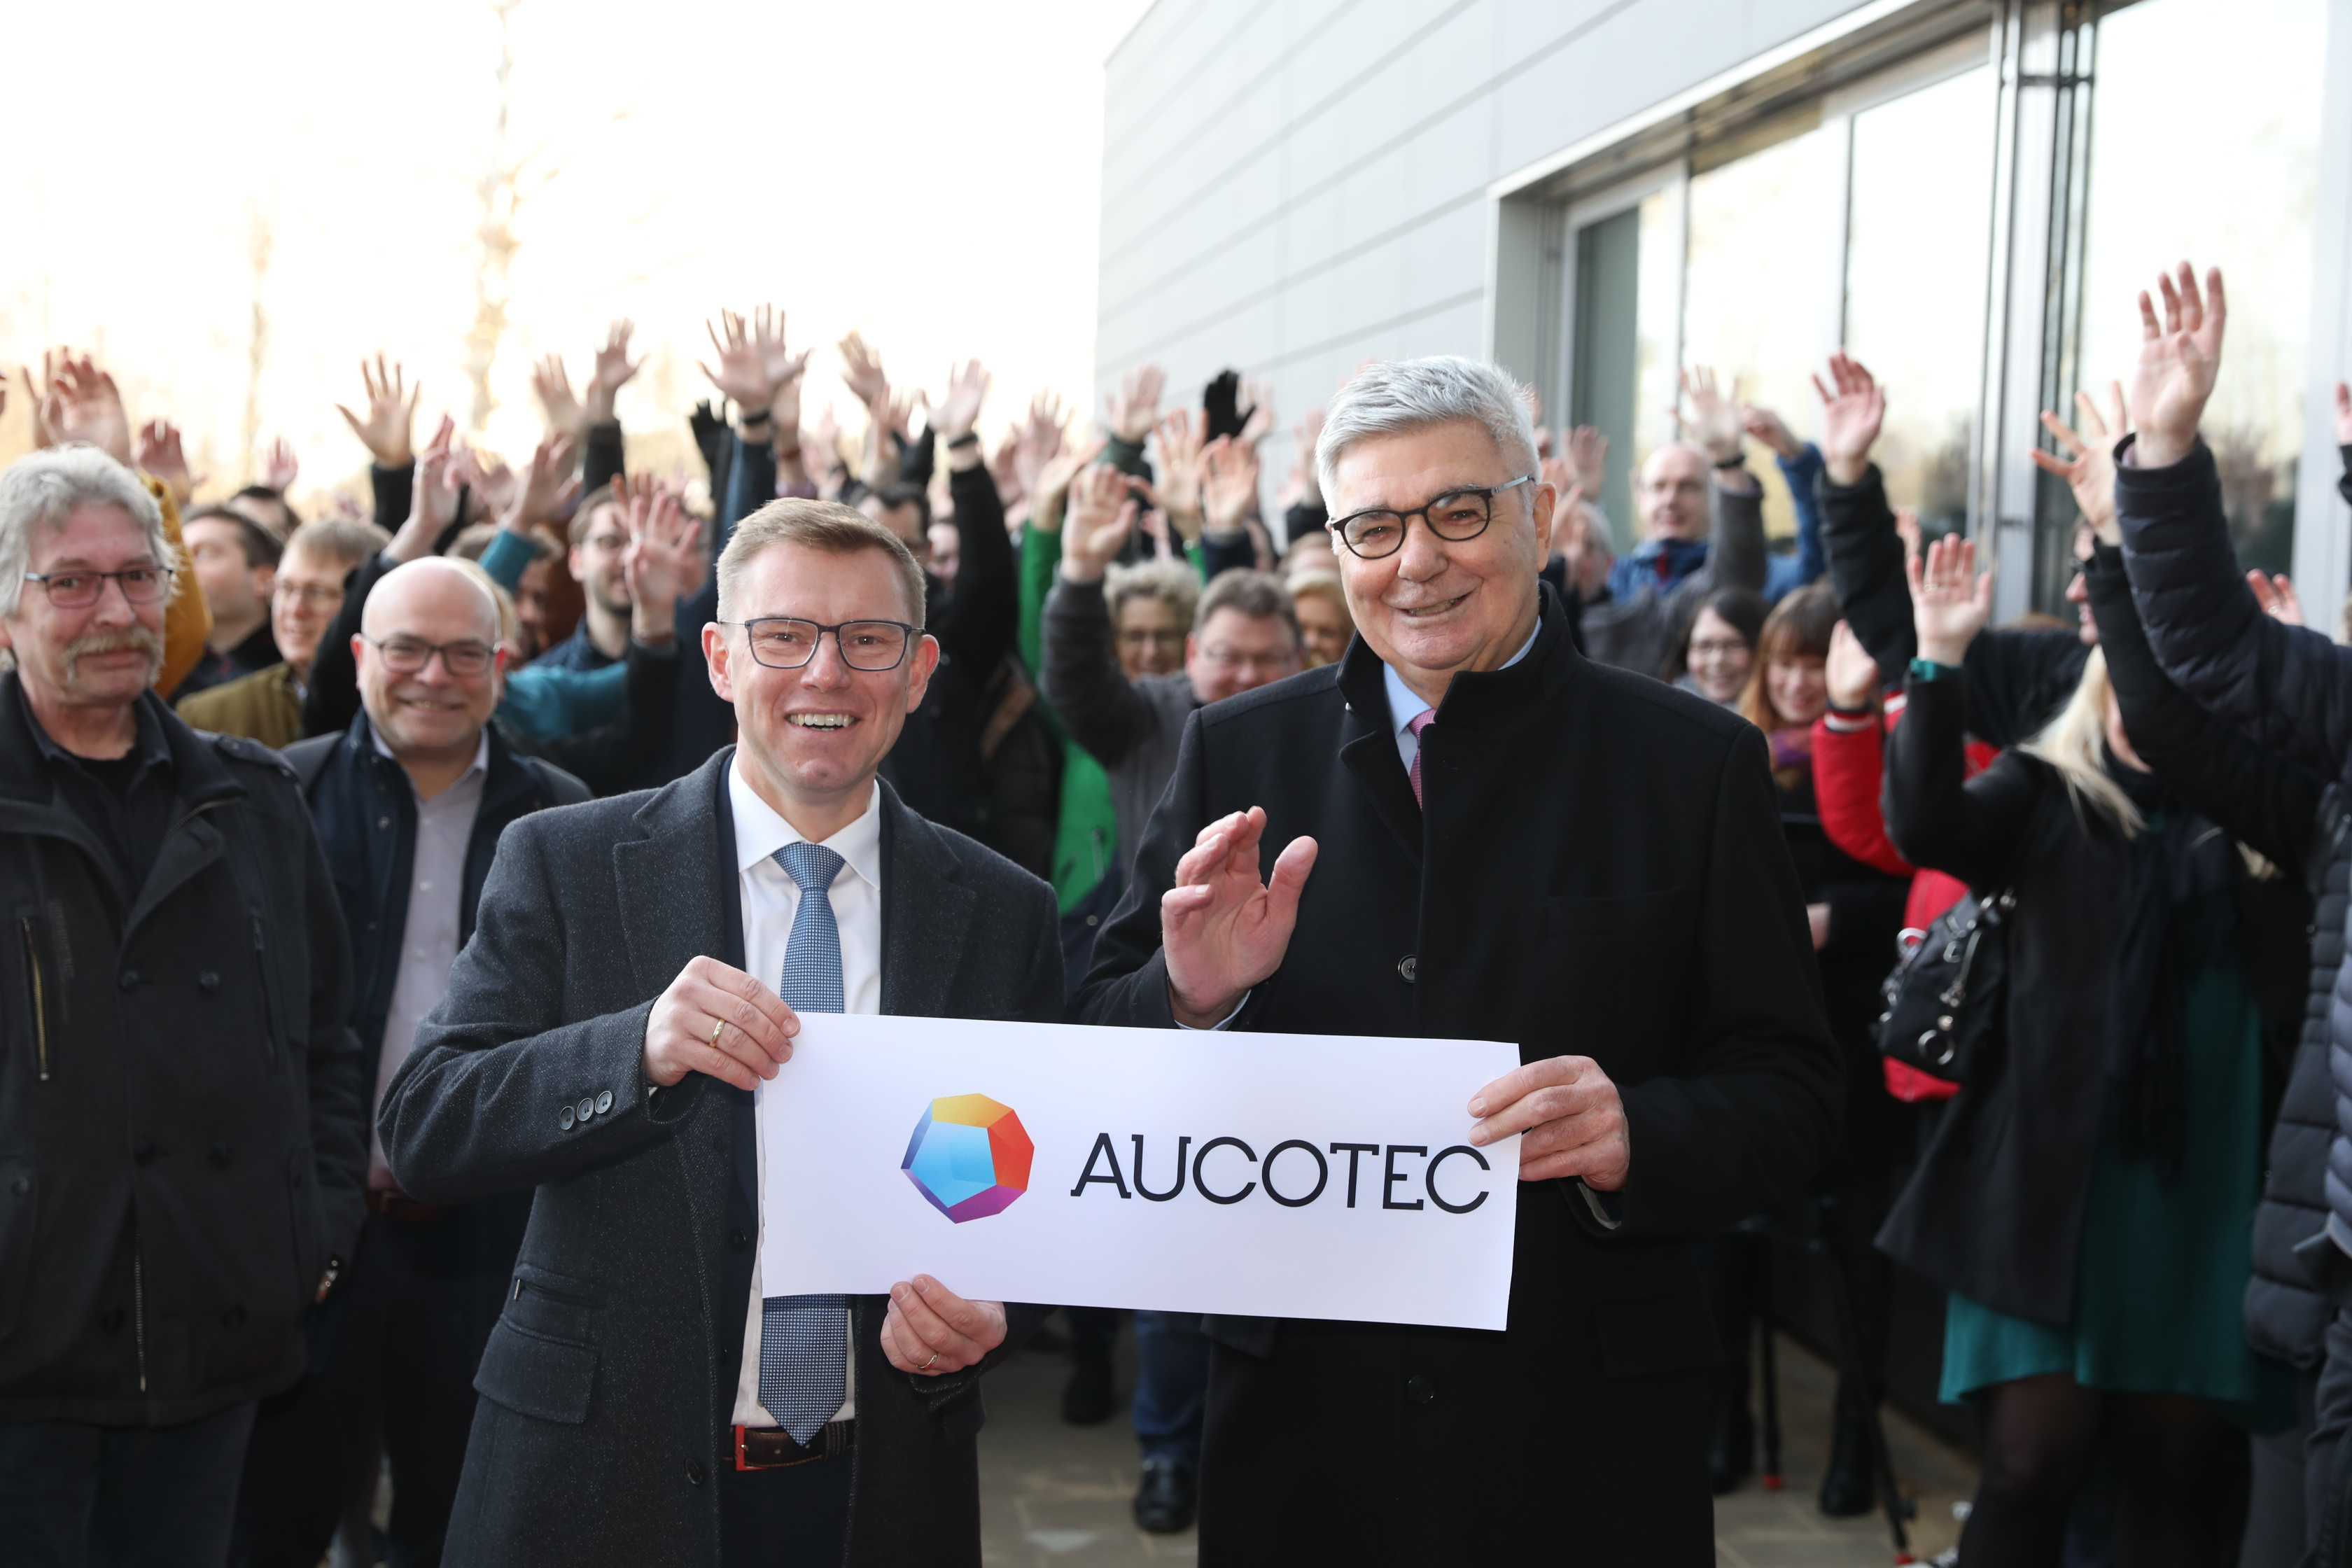 The board members Horst Beran and Uwe Vogt after cutting the opening ribbon. (© AUCOTEC AG)